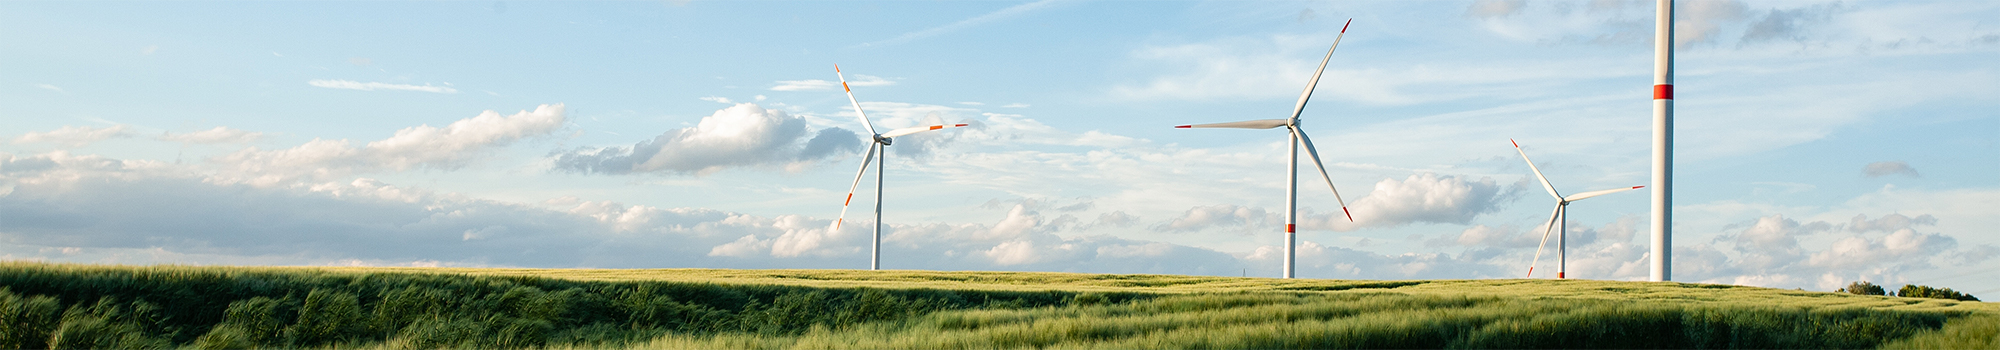 Renewable Energy Turbines | WalterSchindler.com